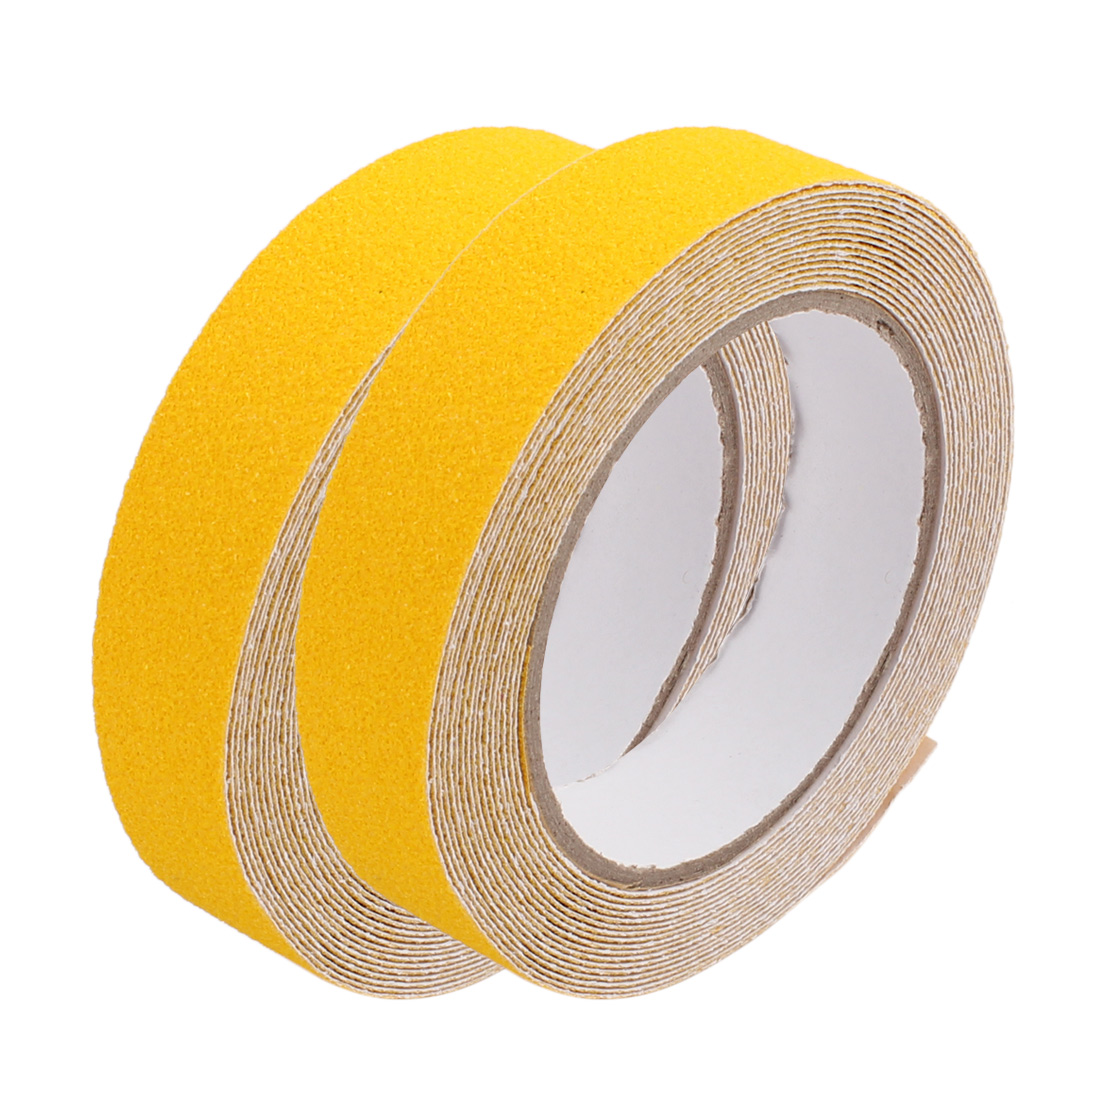 2Pcs Yellow Non-Slip Grip Tape Safety High Traction Indoor Outdoor 25mmx5m